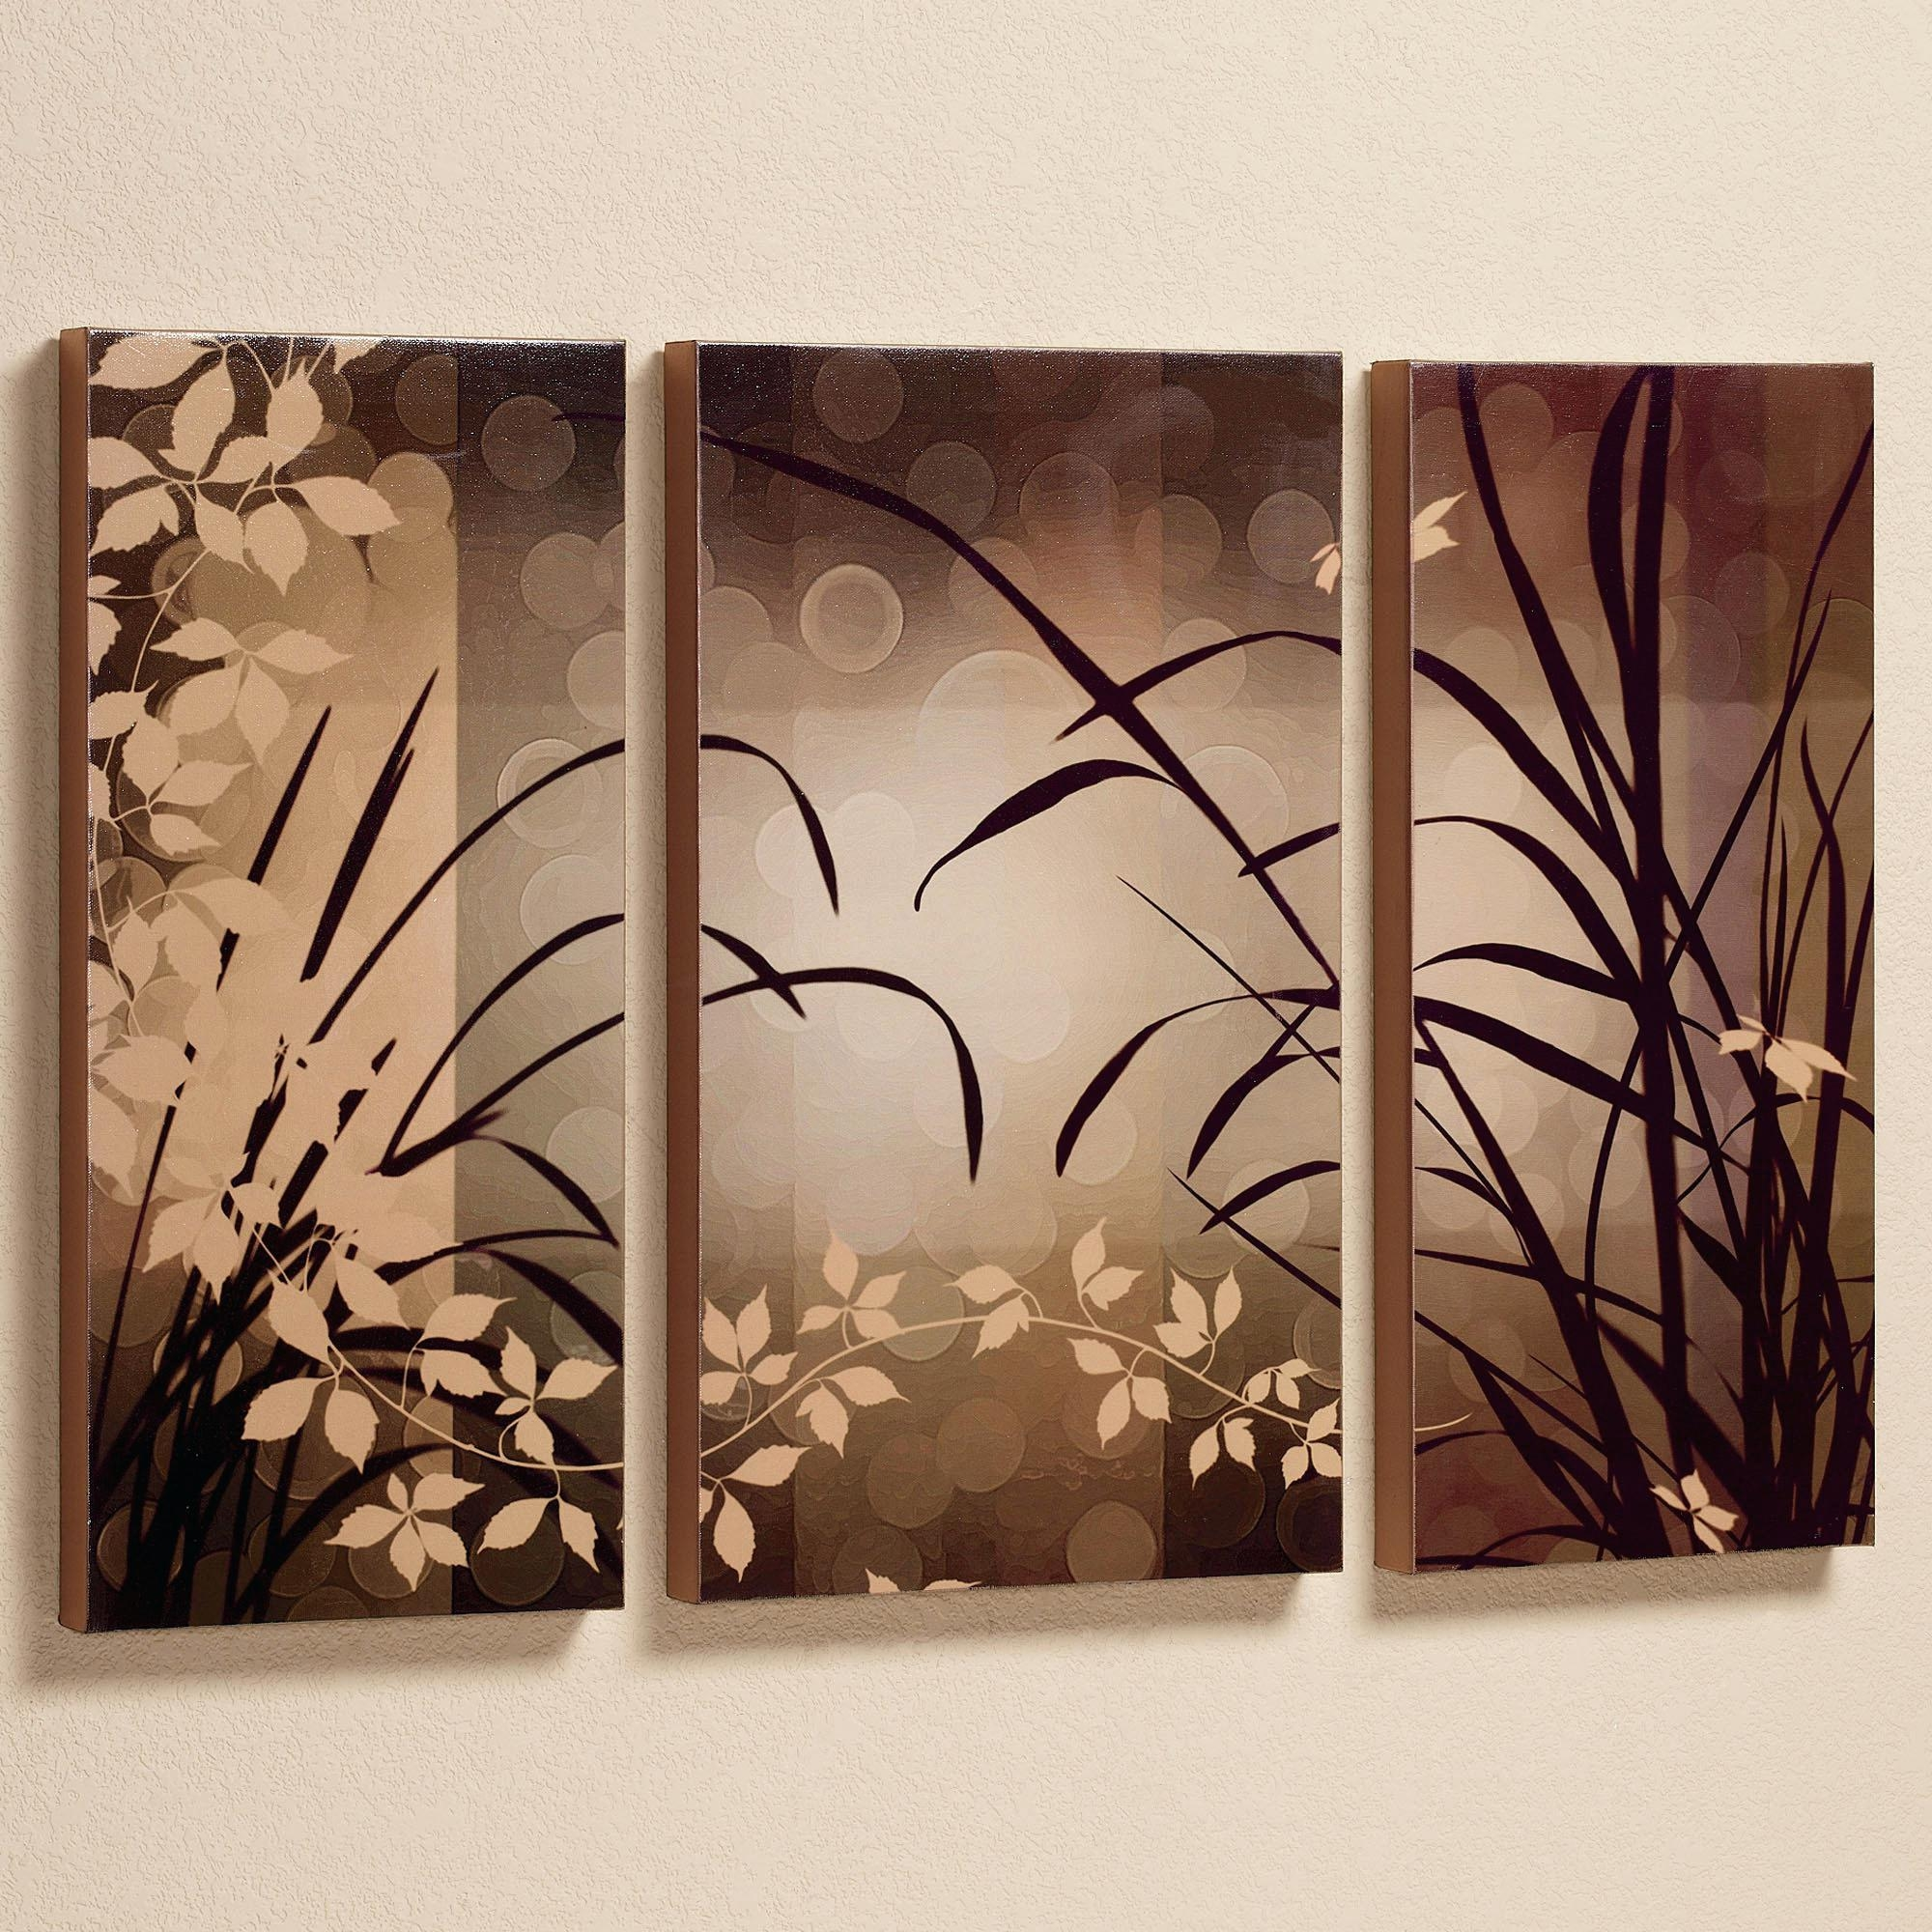 Wall Ideas : 3 Piece Canvas Wall Art Uk 3 Piece Wall Decor Bedroom With Black And White Wall Art Sets (Image 19 of 20)